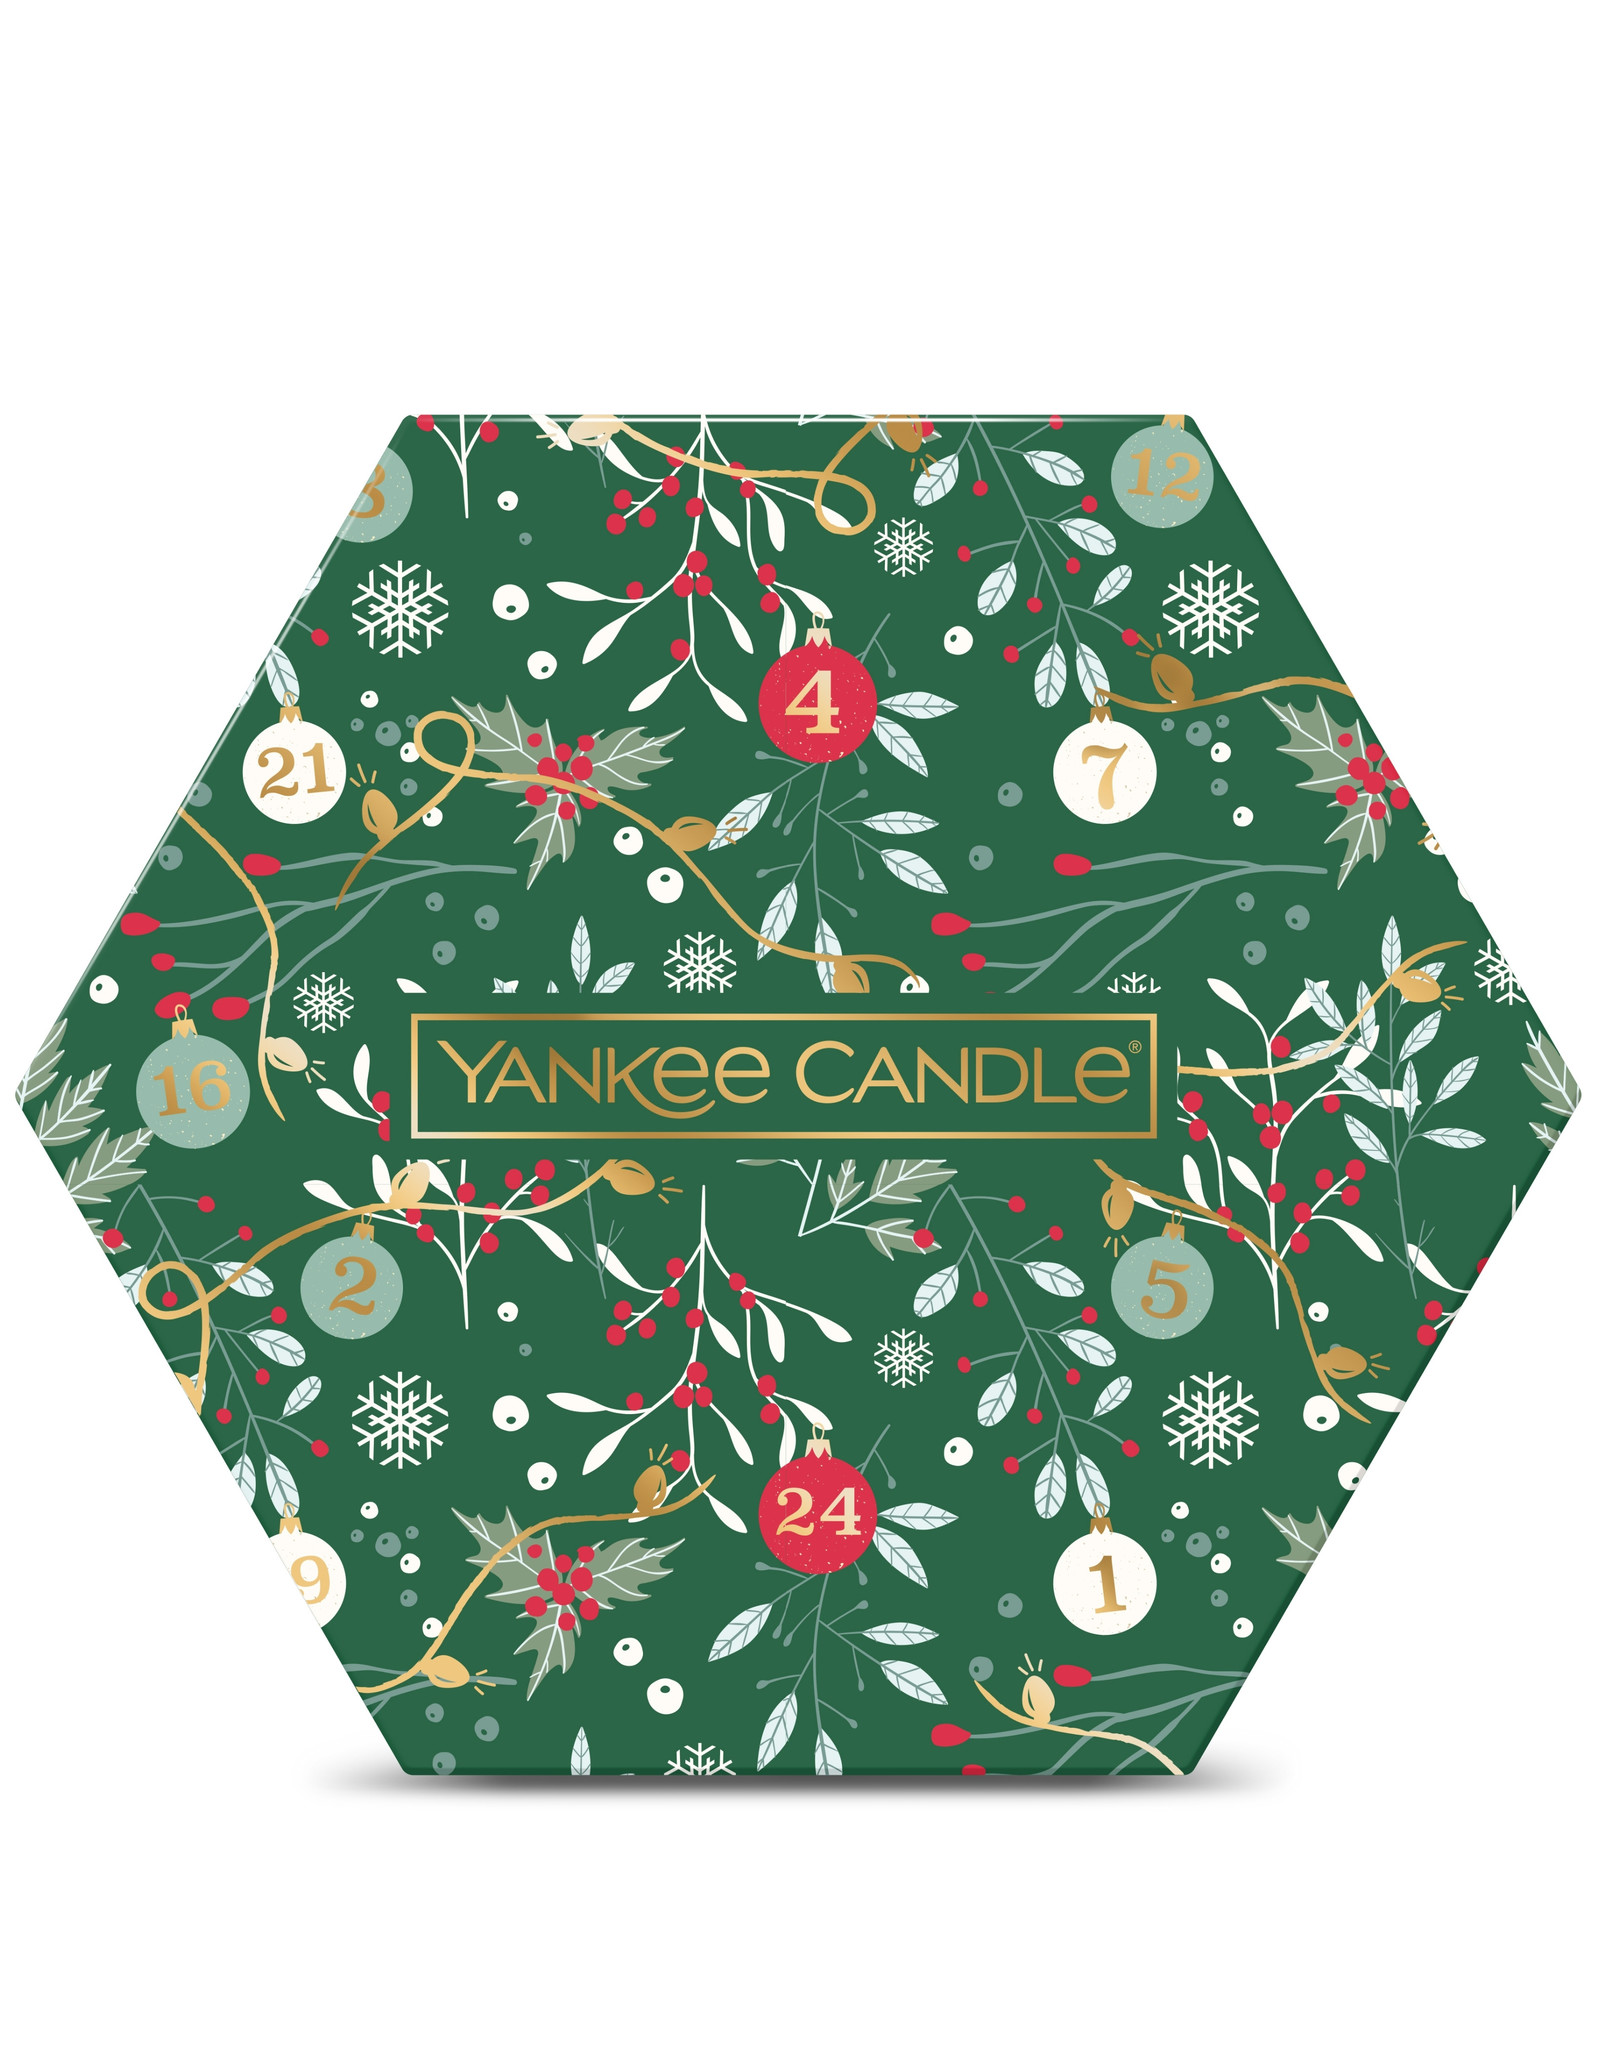 Yankee Candle Countdown to Christmas - Tea Light Delight